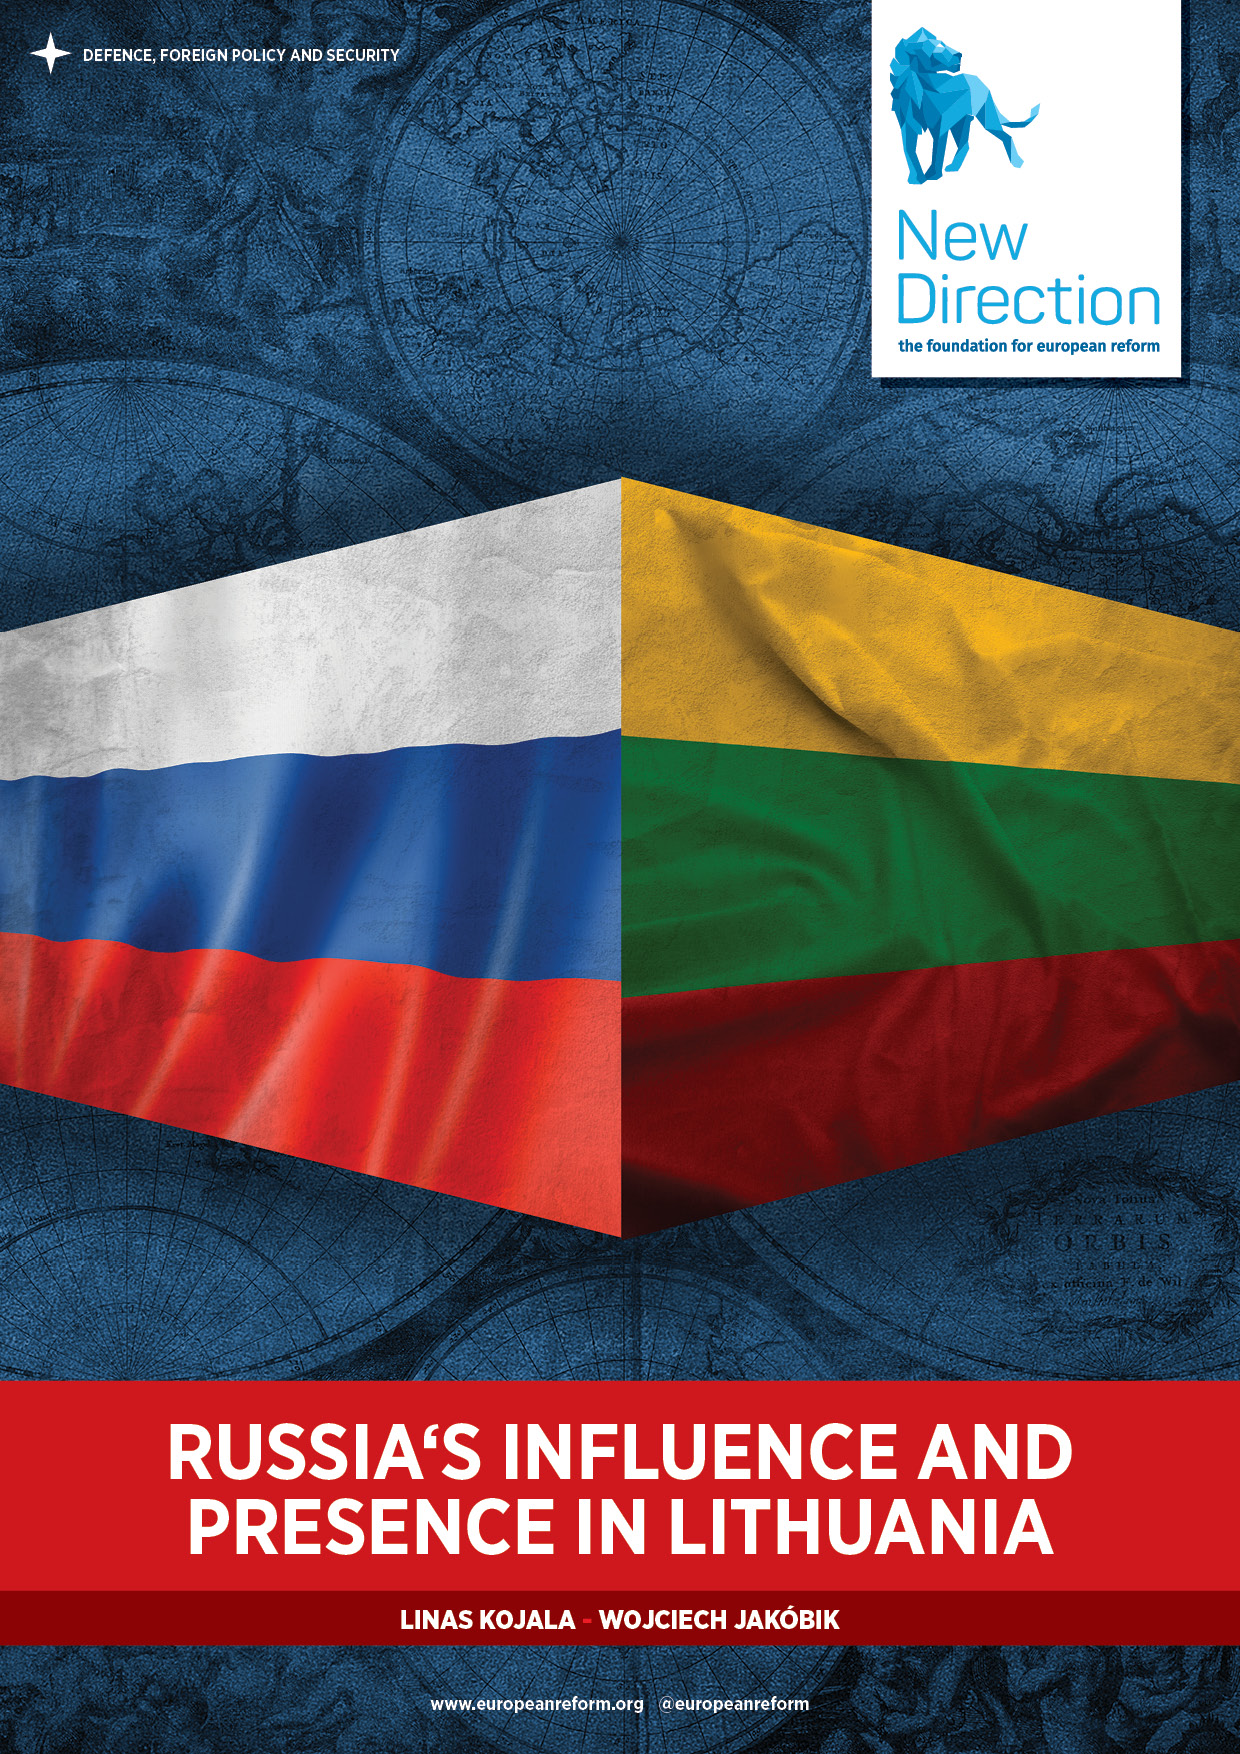 Russia's influence and presence in Lithuania